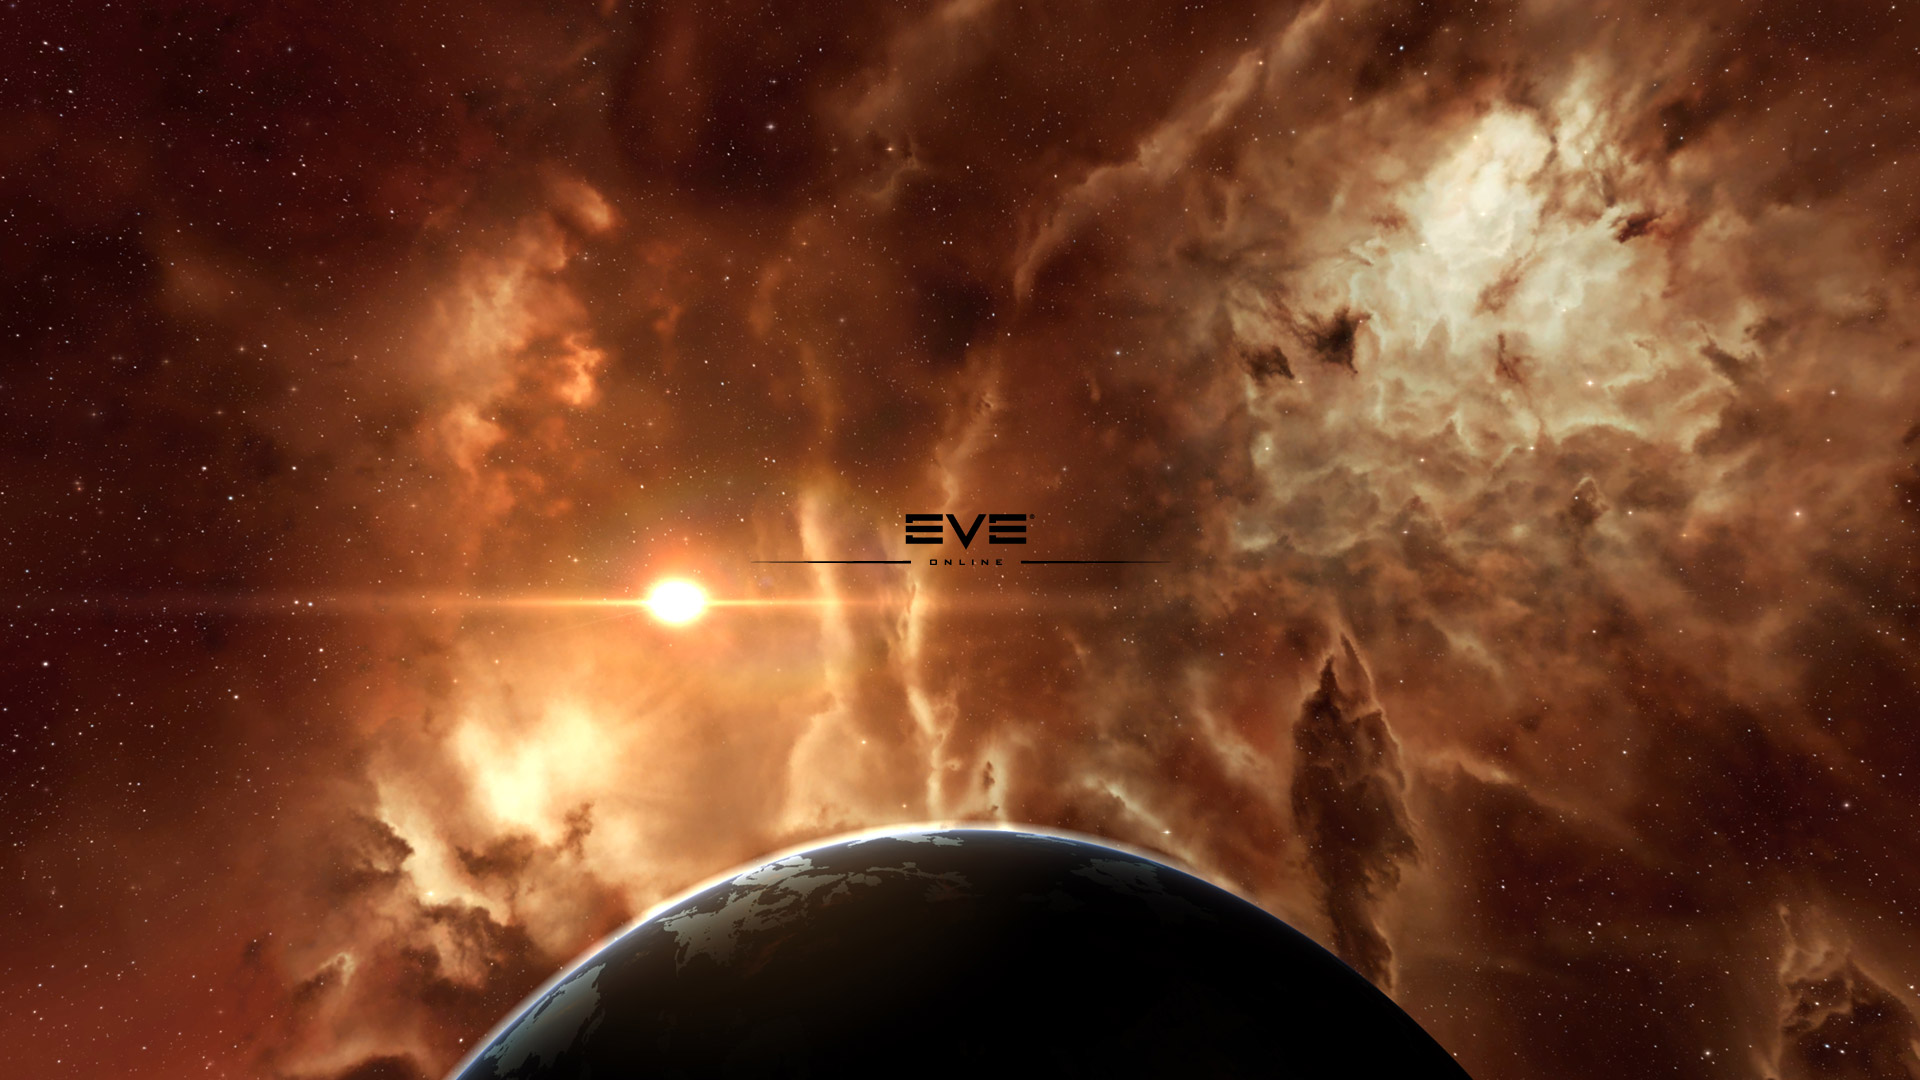 Free EVE Online Wallpaper in 1920x1080